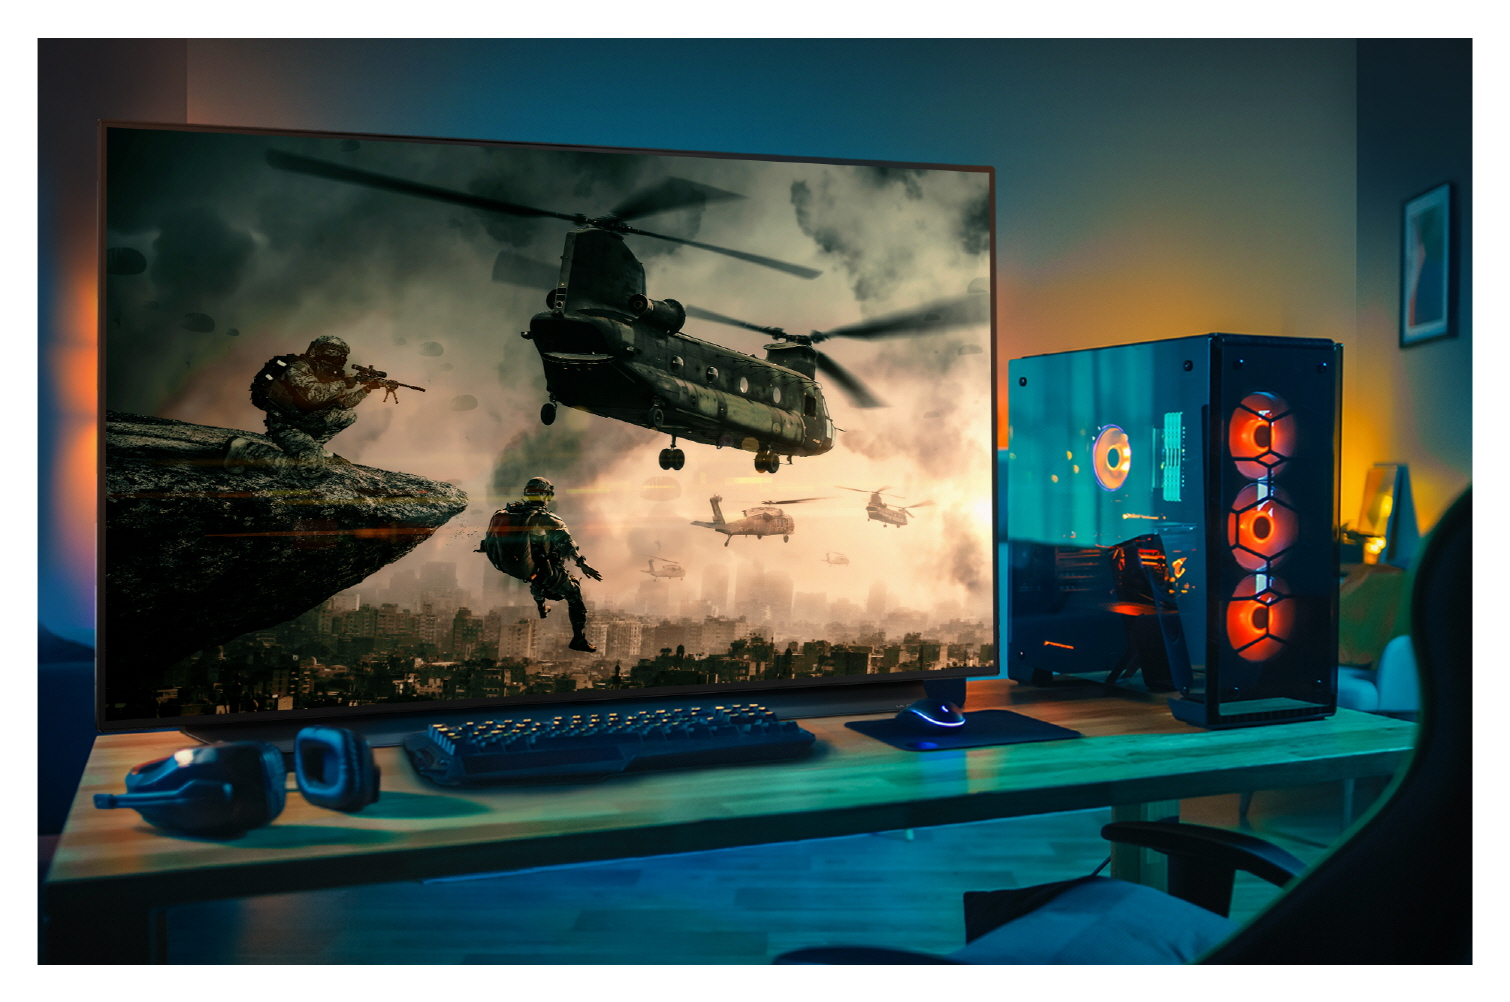 LG's 48-inch OLED TV delivering immersive and smooth gameplay and picture quality as part of a gaming setup in a dimly lit room